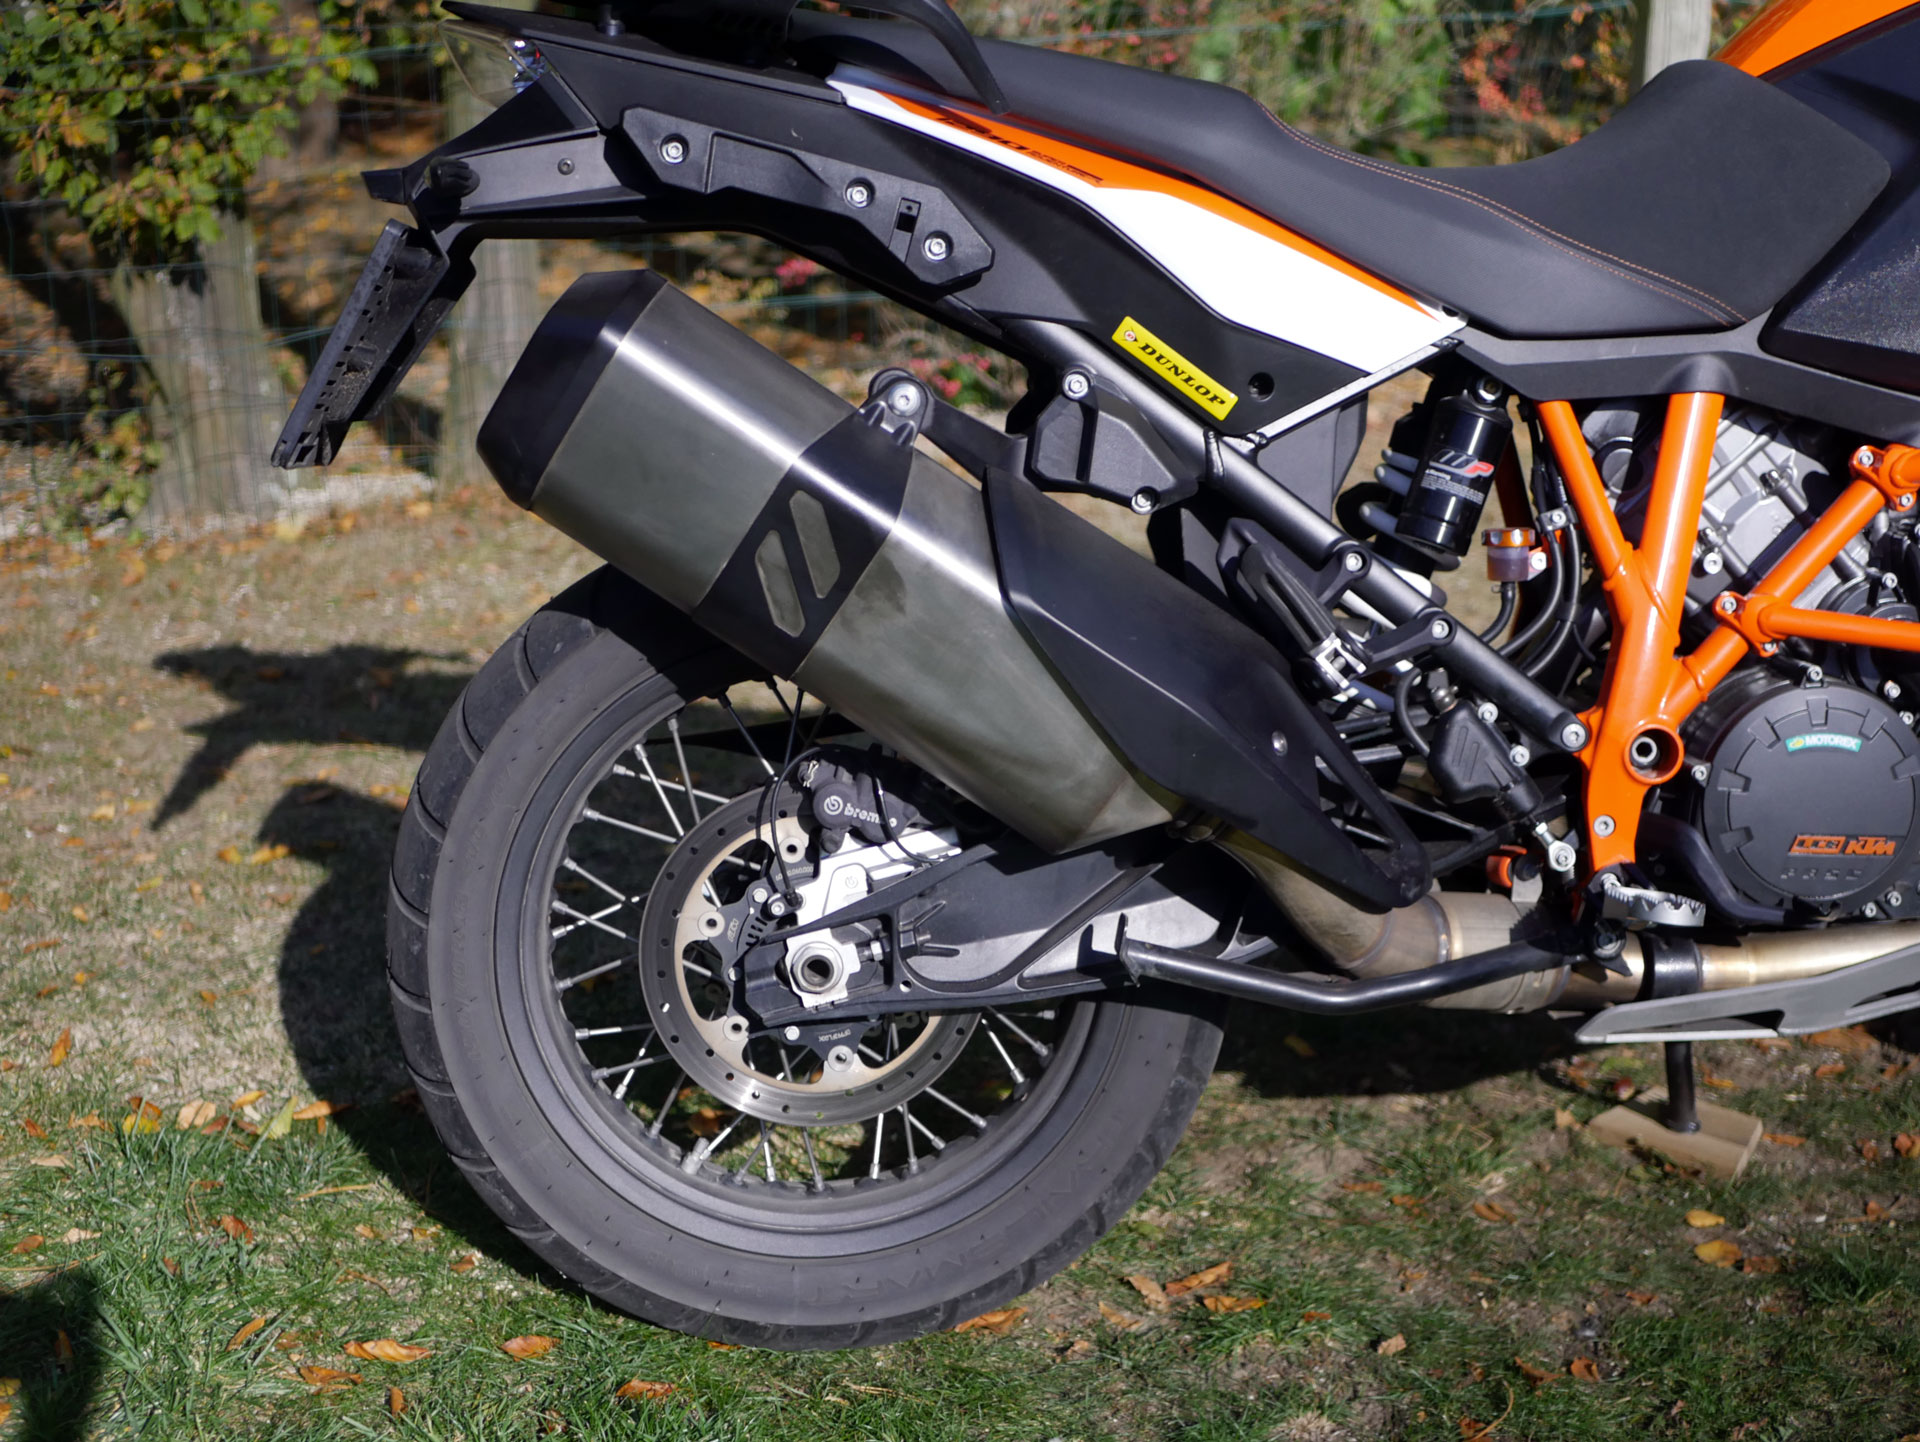 Eclairage Supplementaire Moto Test De La Ktm 1290 Super Adventure R L 39excellence